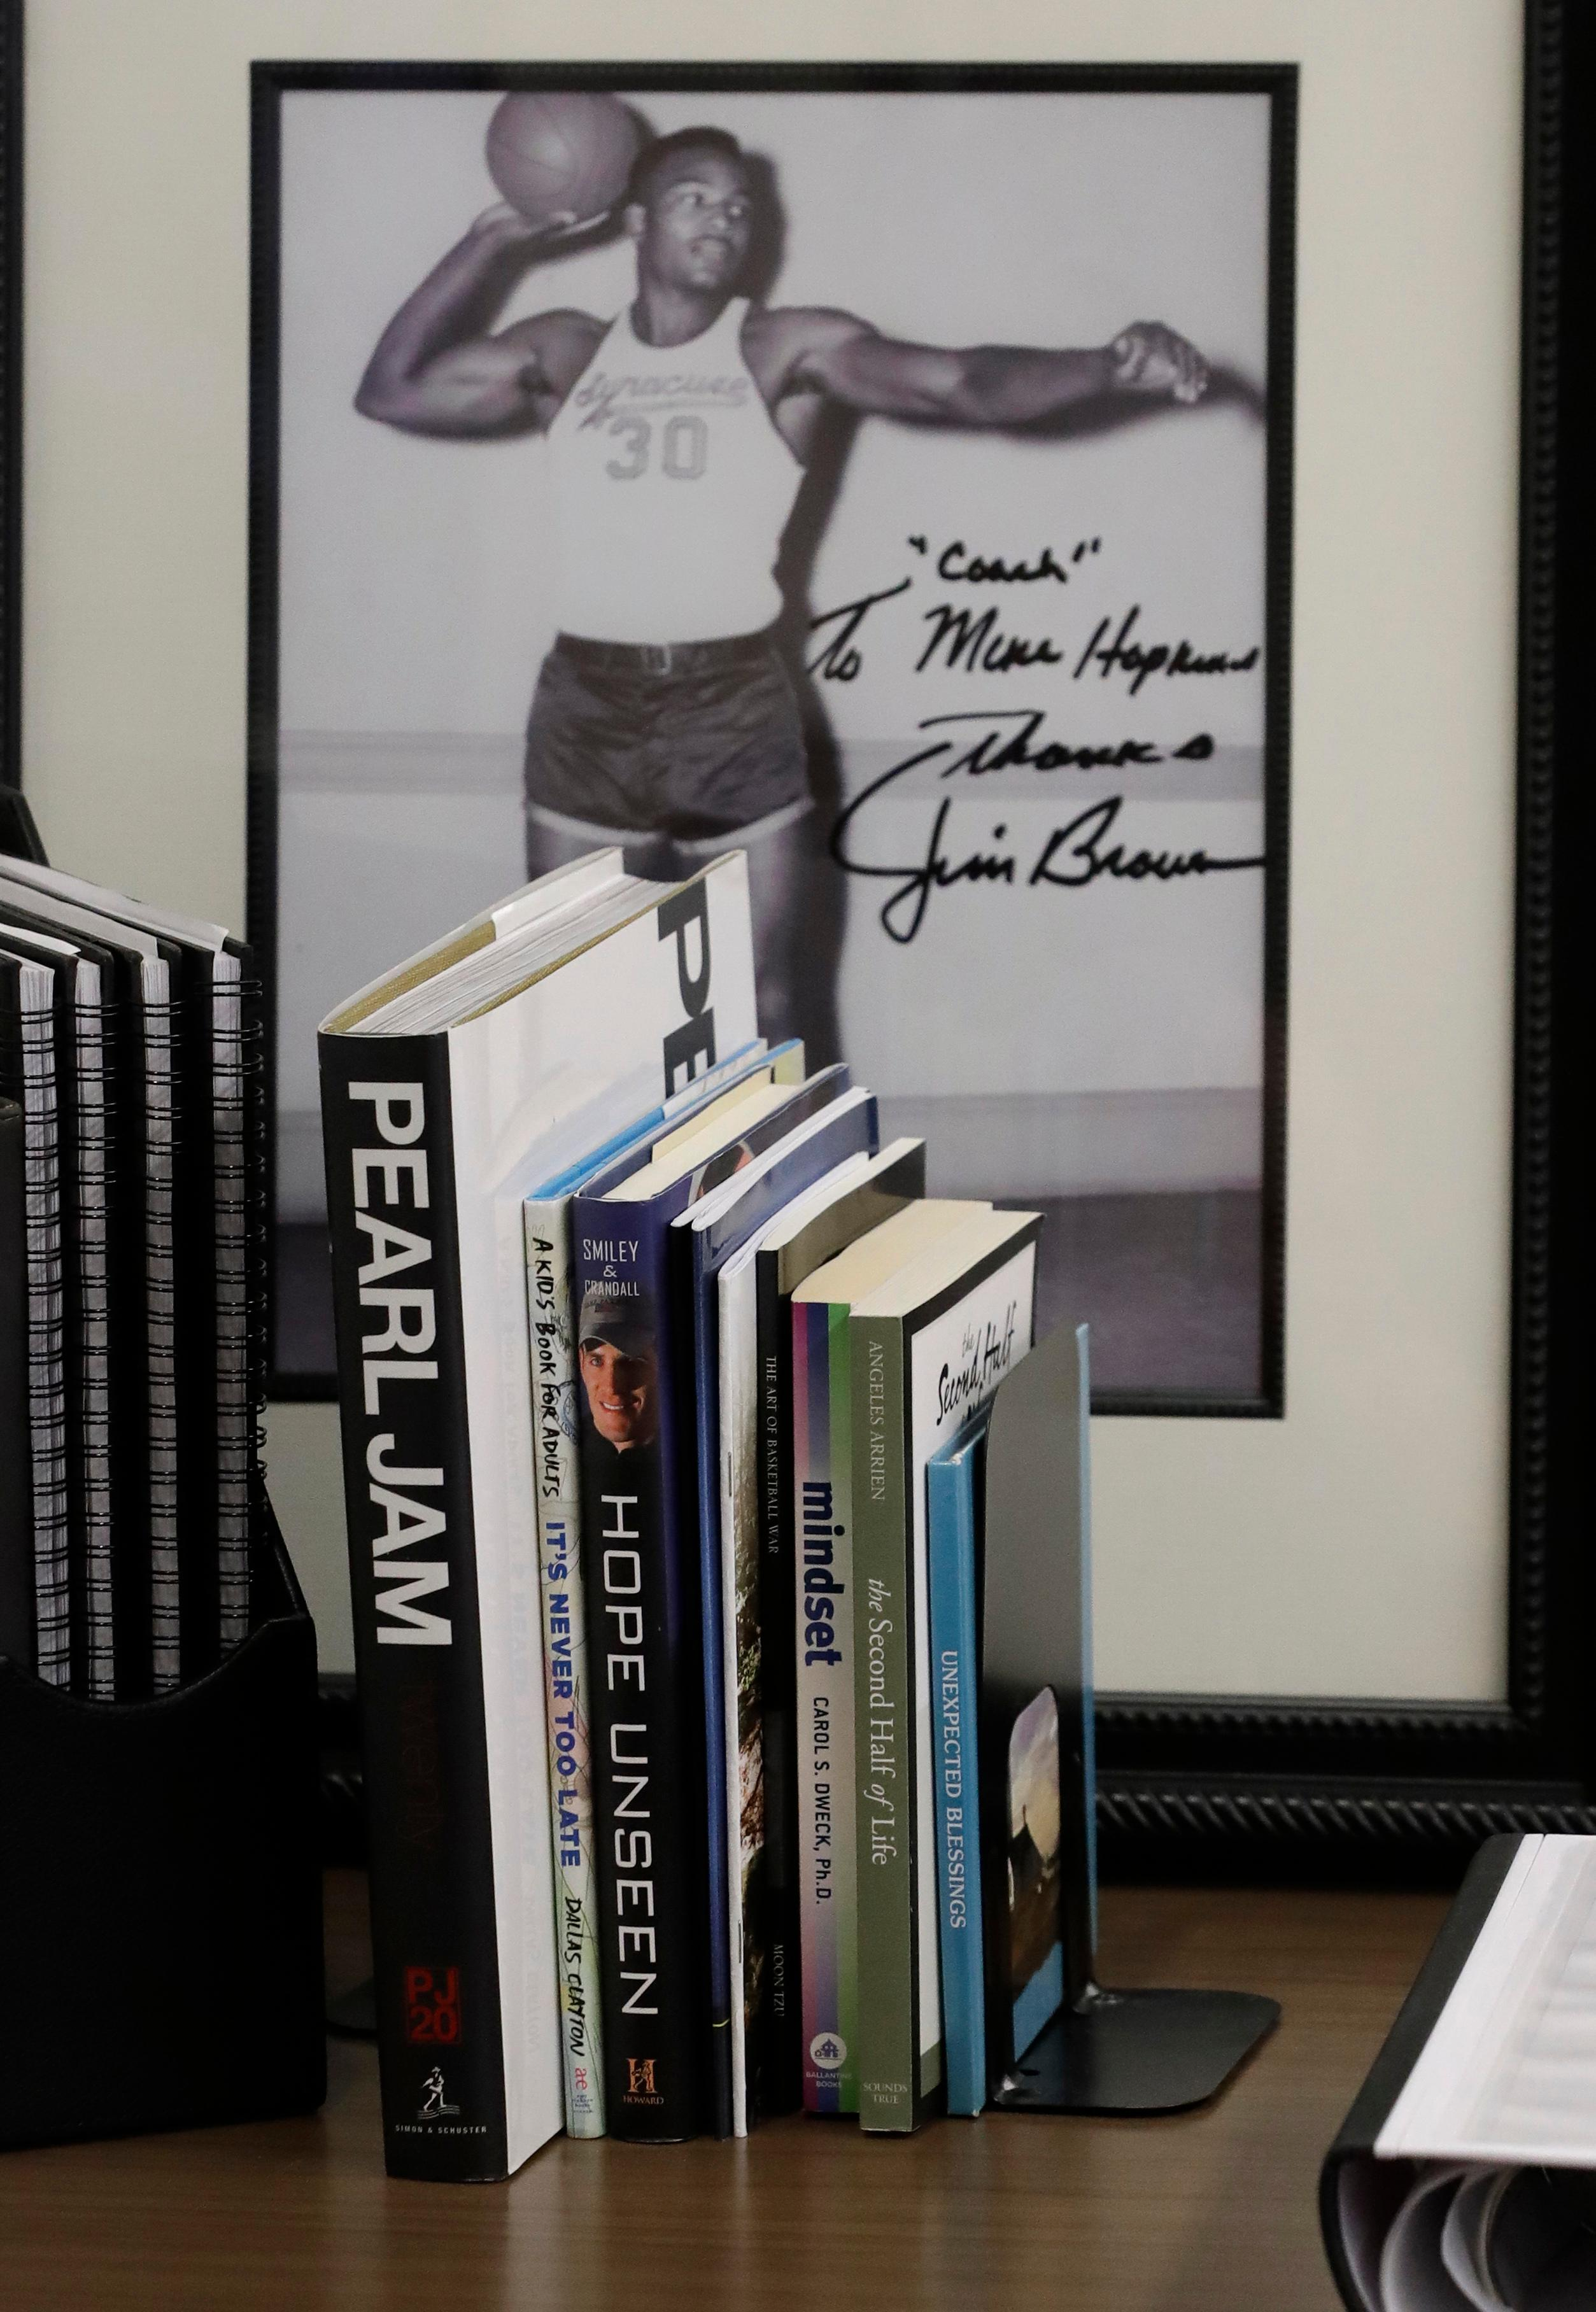 In this Sunday, Jan. 28, 2018 photo, a desk in the office of Washington head coach Mike Hopkins, in Seattle, displays books and an autographed photo of basketball legend Jim Brown during his playing days at Syracuse University, where Hopkins was a longtime assistant coach before taking over at Washington at the start of the 2018 season. One of the most surprising stories in college basketball is what Hopkins is doing in his first season at Washington and how the Huskies are in the conversation for an NCAA bid entering February. Hopkins is also a big fan of the Seattle-based band Pearl Jam. (AP Photo/Ted S. Warren)